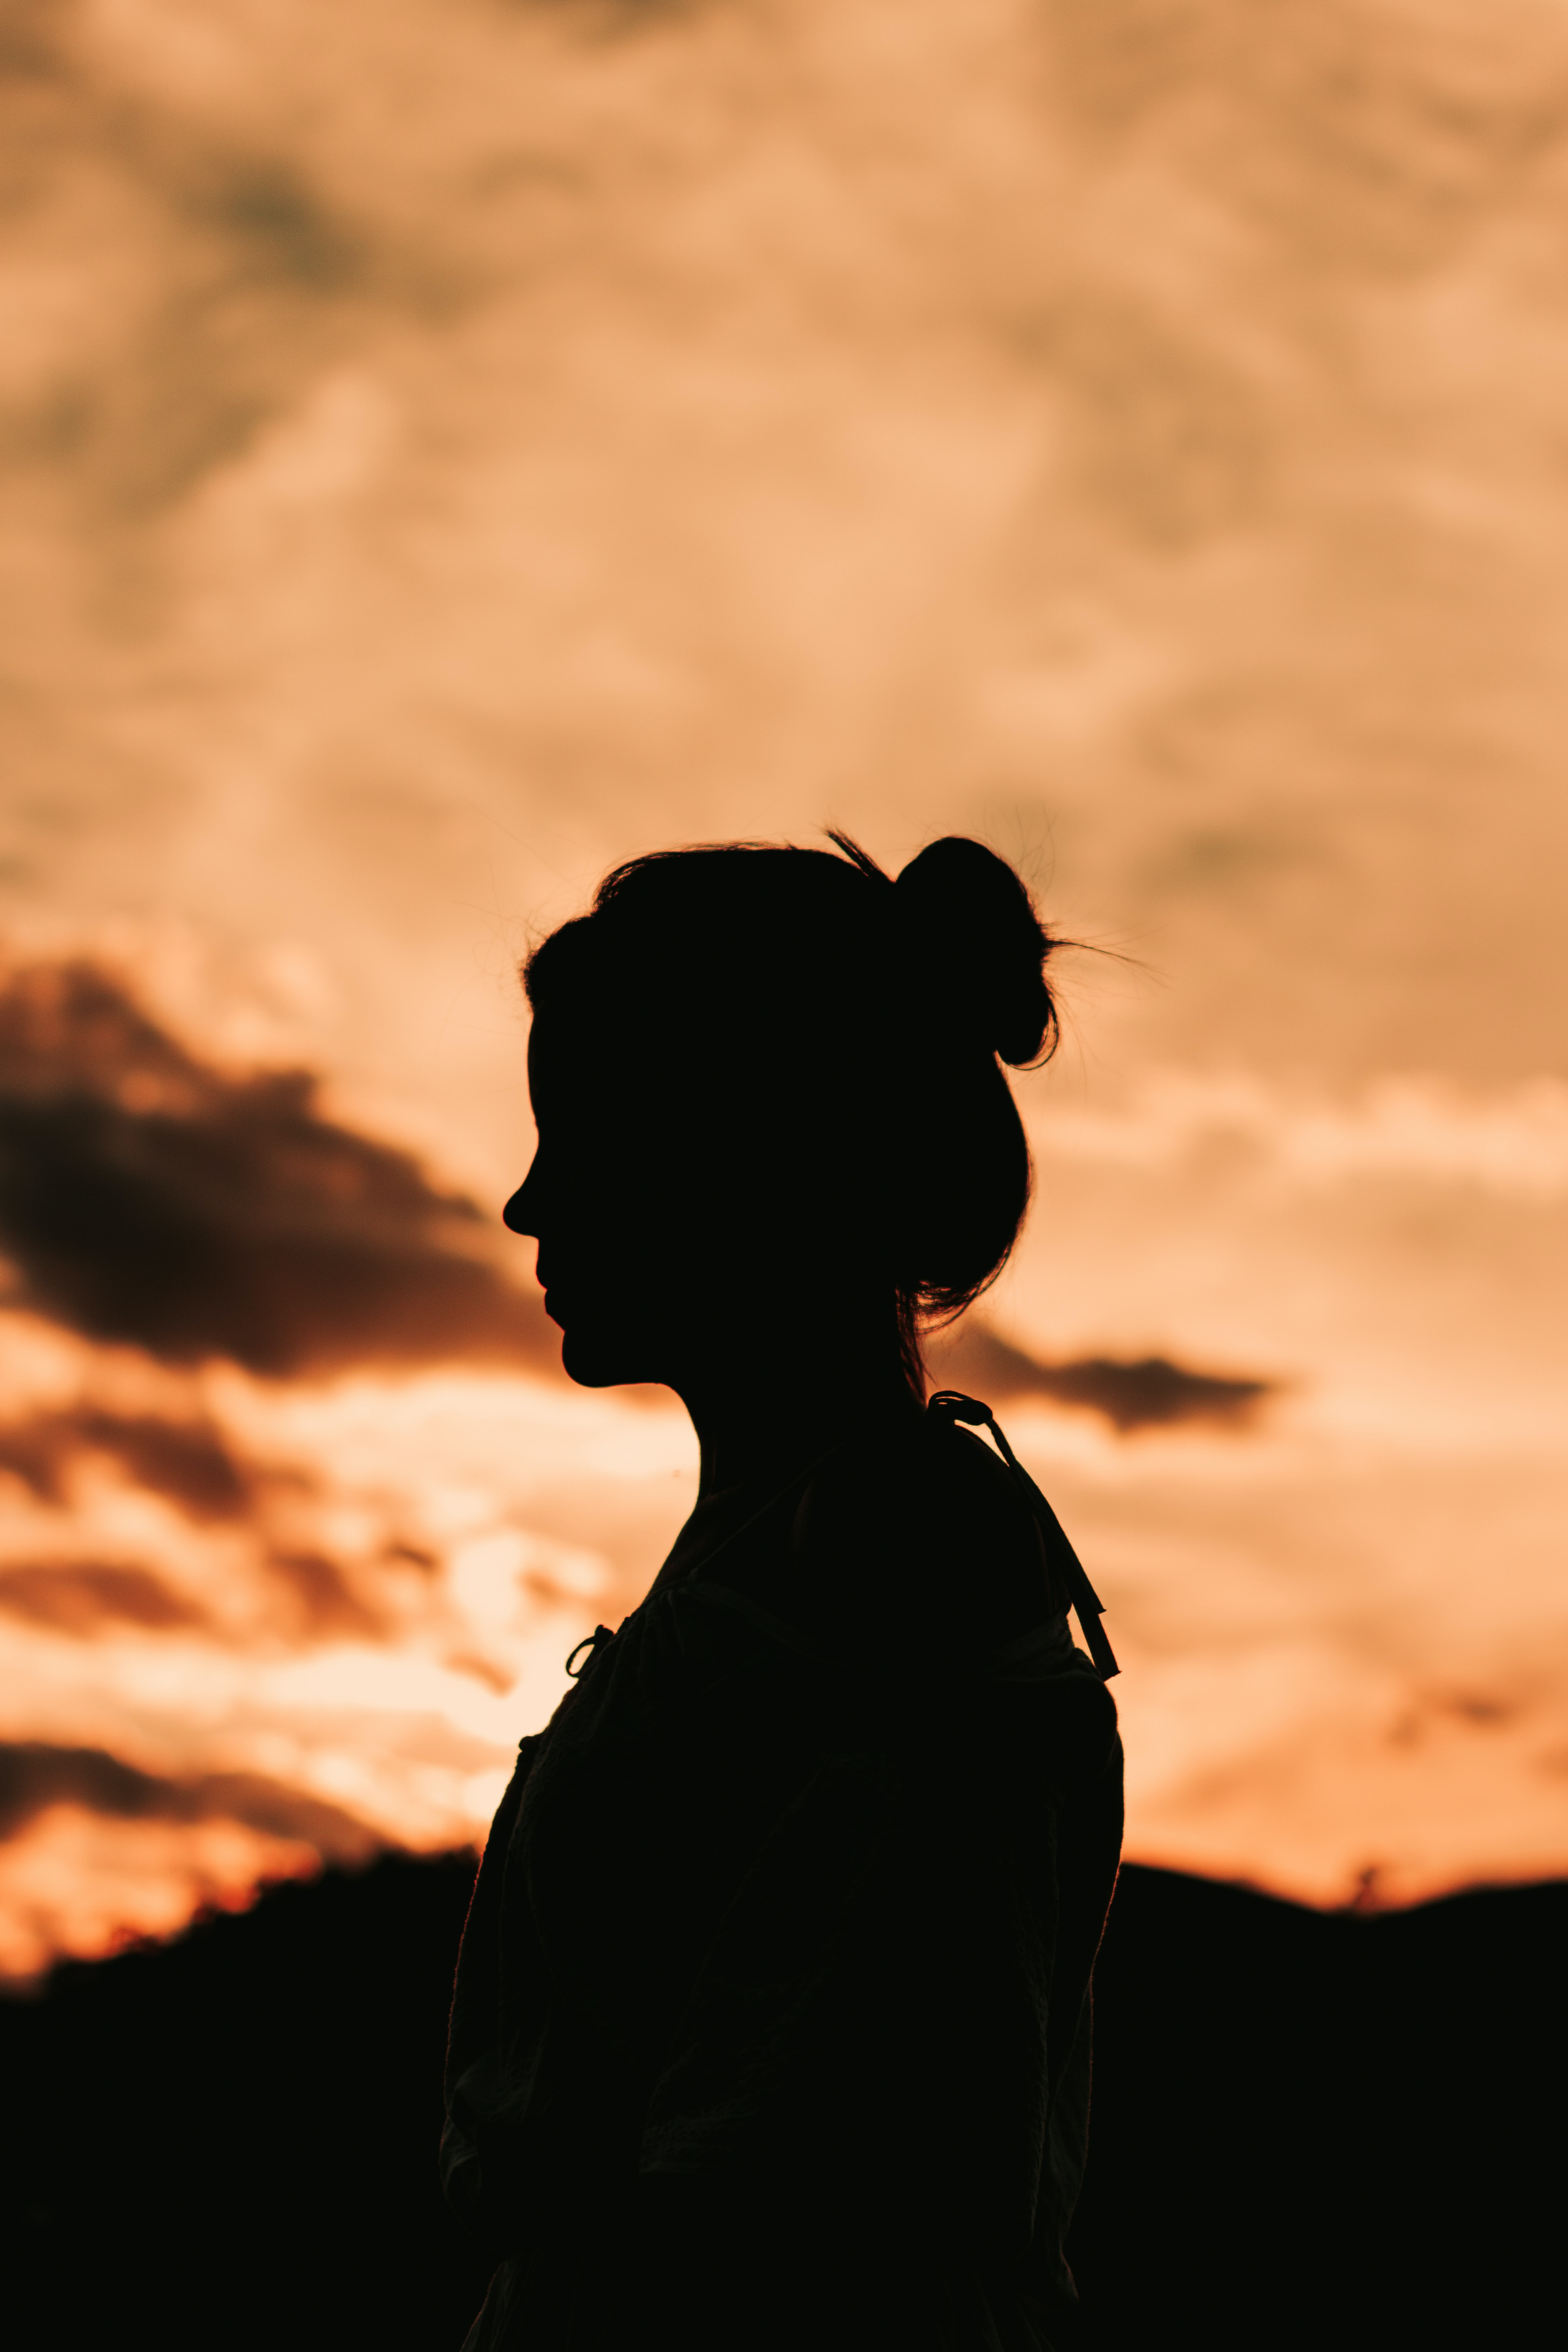 Silhouette of a woman standing alone under an orangesunset